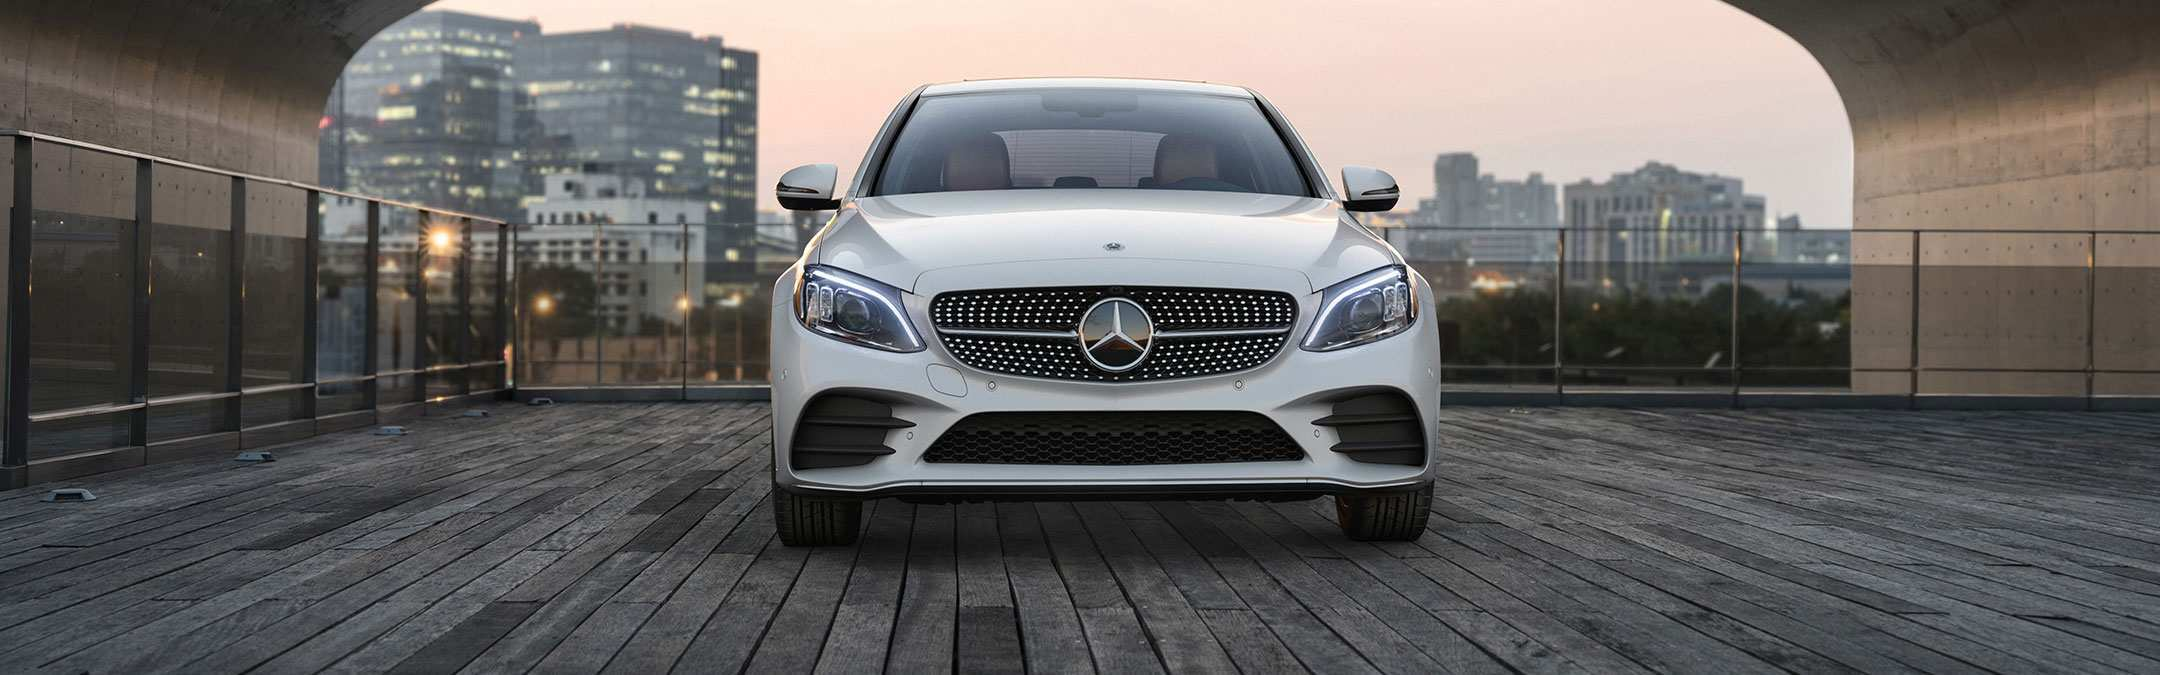 76 Gallery of New 2019 Mercedes Delivery Date Price Redesign and Concept with New 2019 Mercedes Delivery Date Price